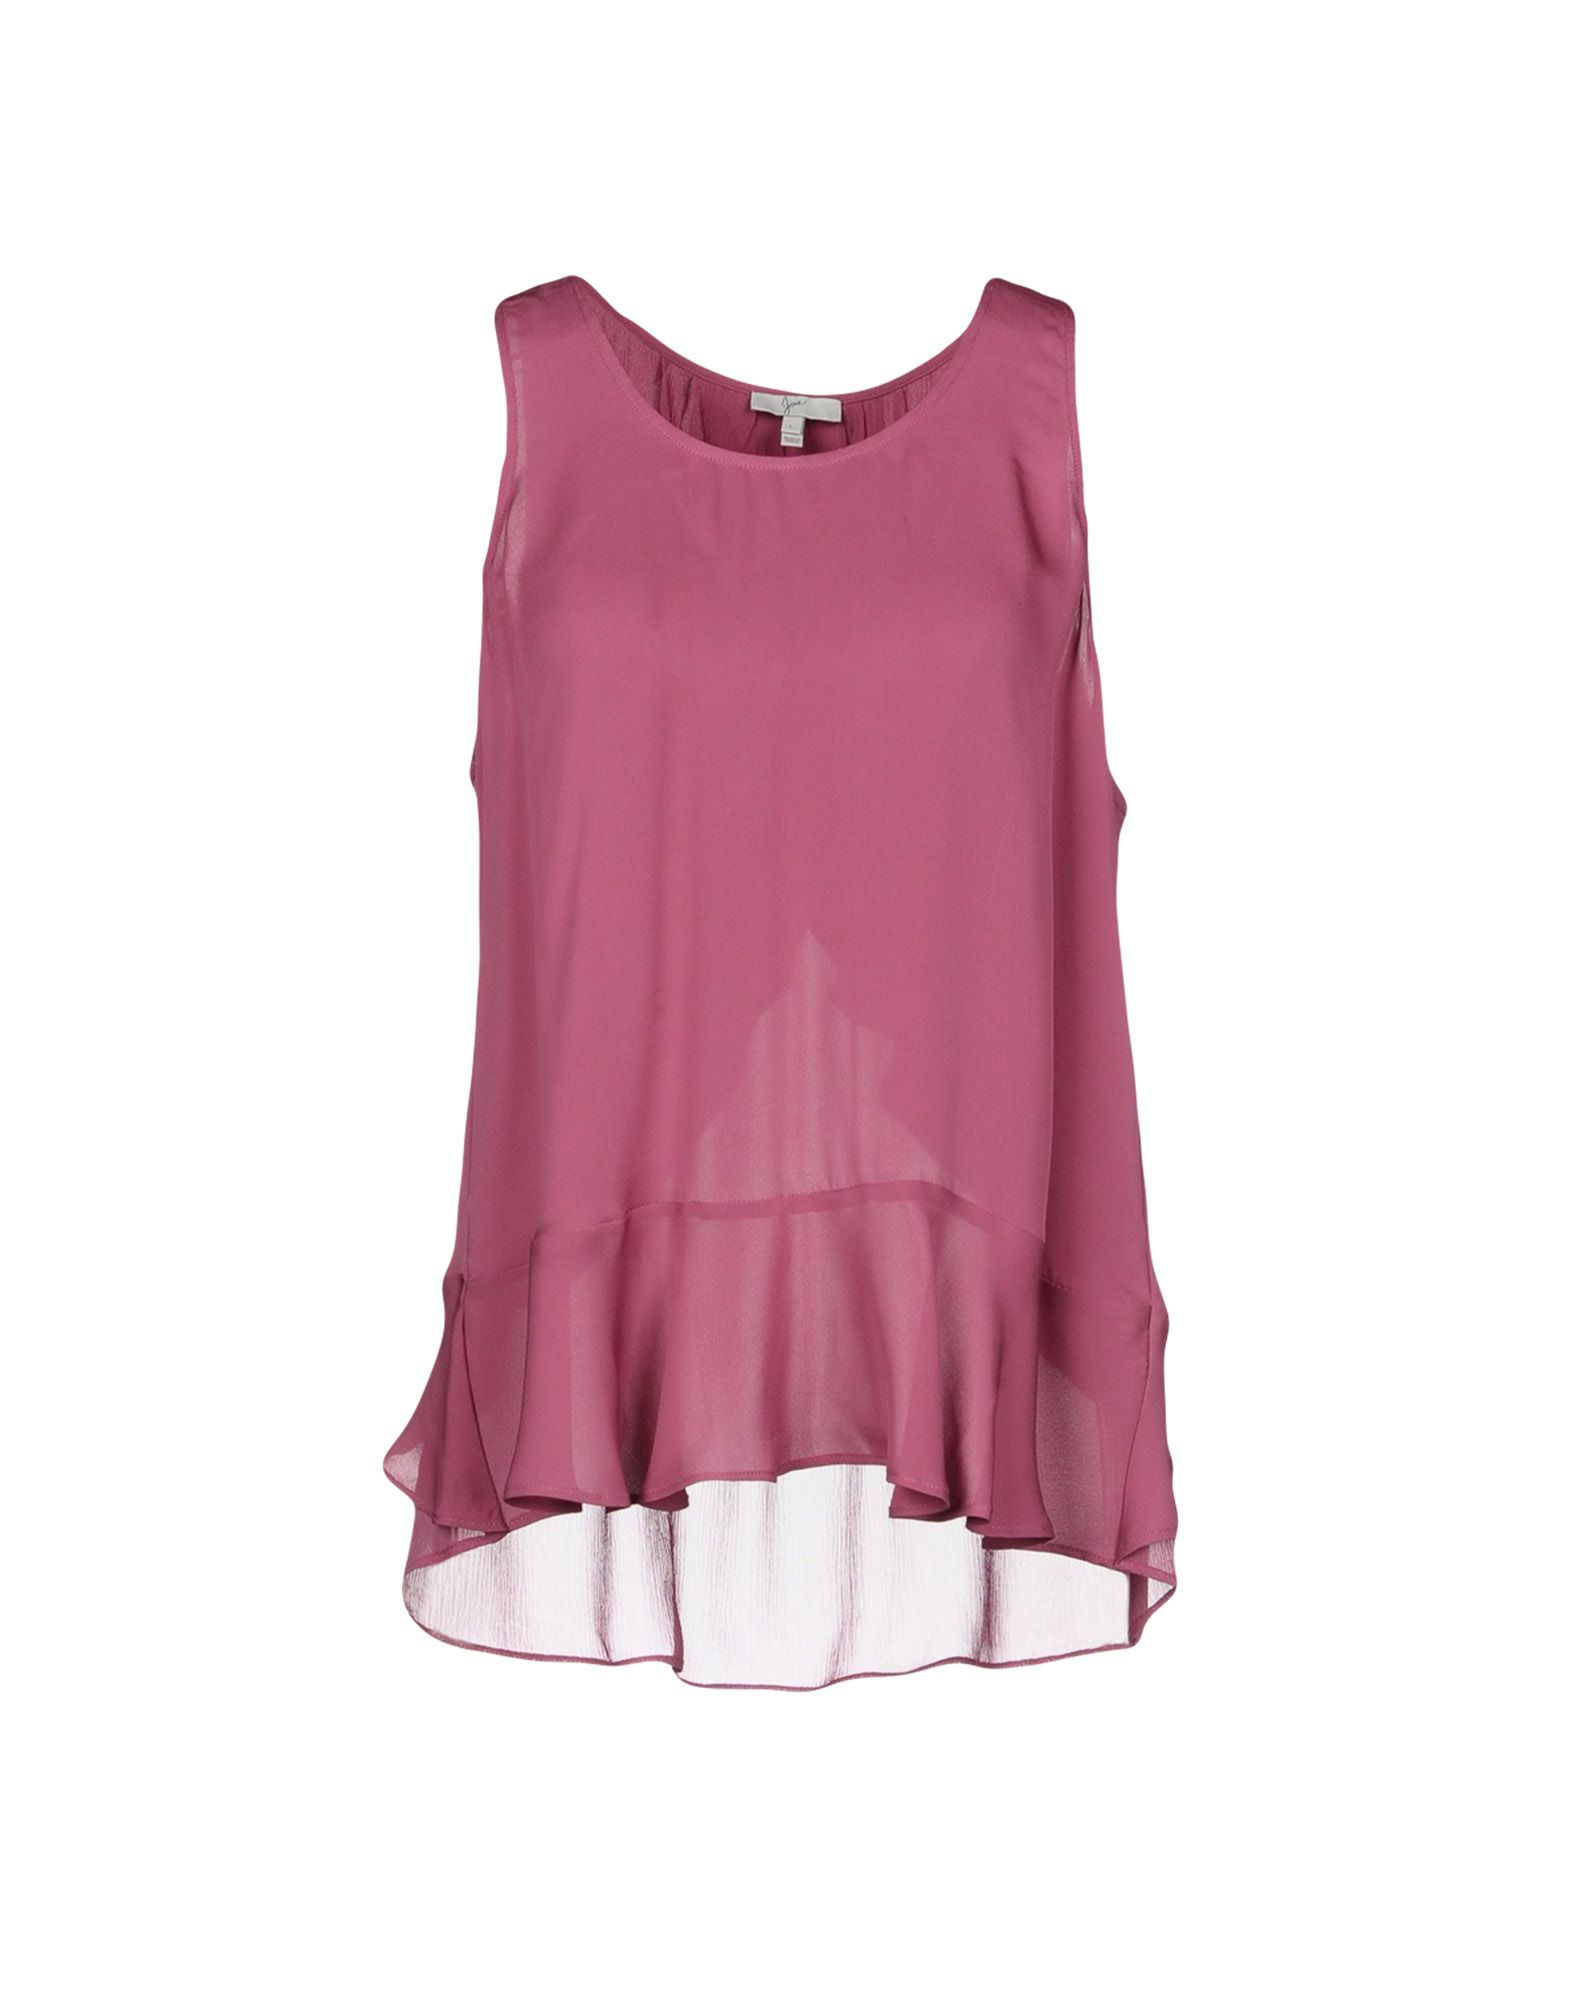 Top Joie donna - 12165766BF 12165766BF 12165766BF 49e